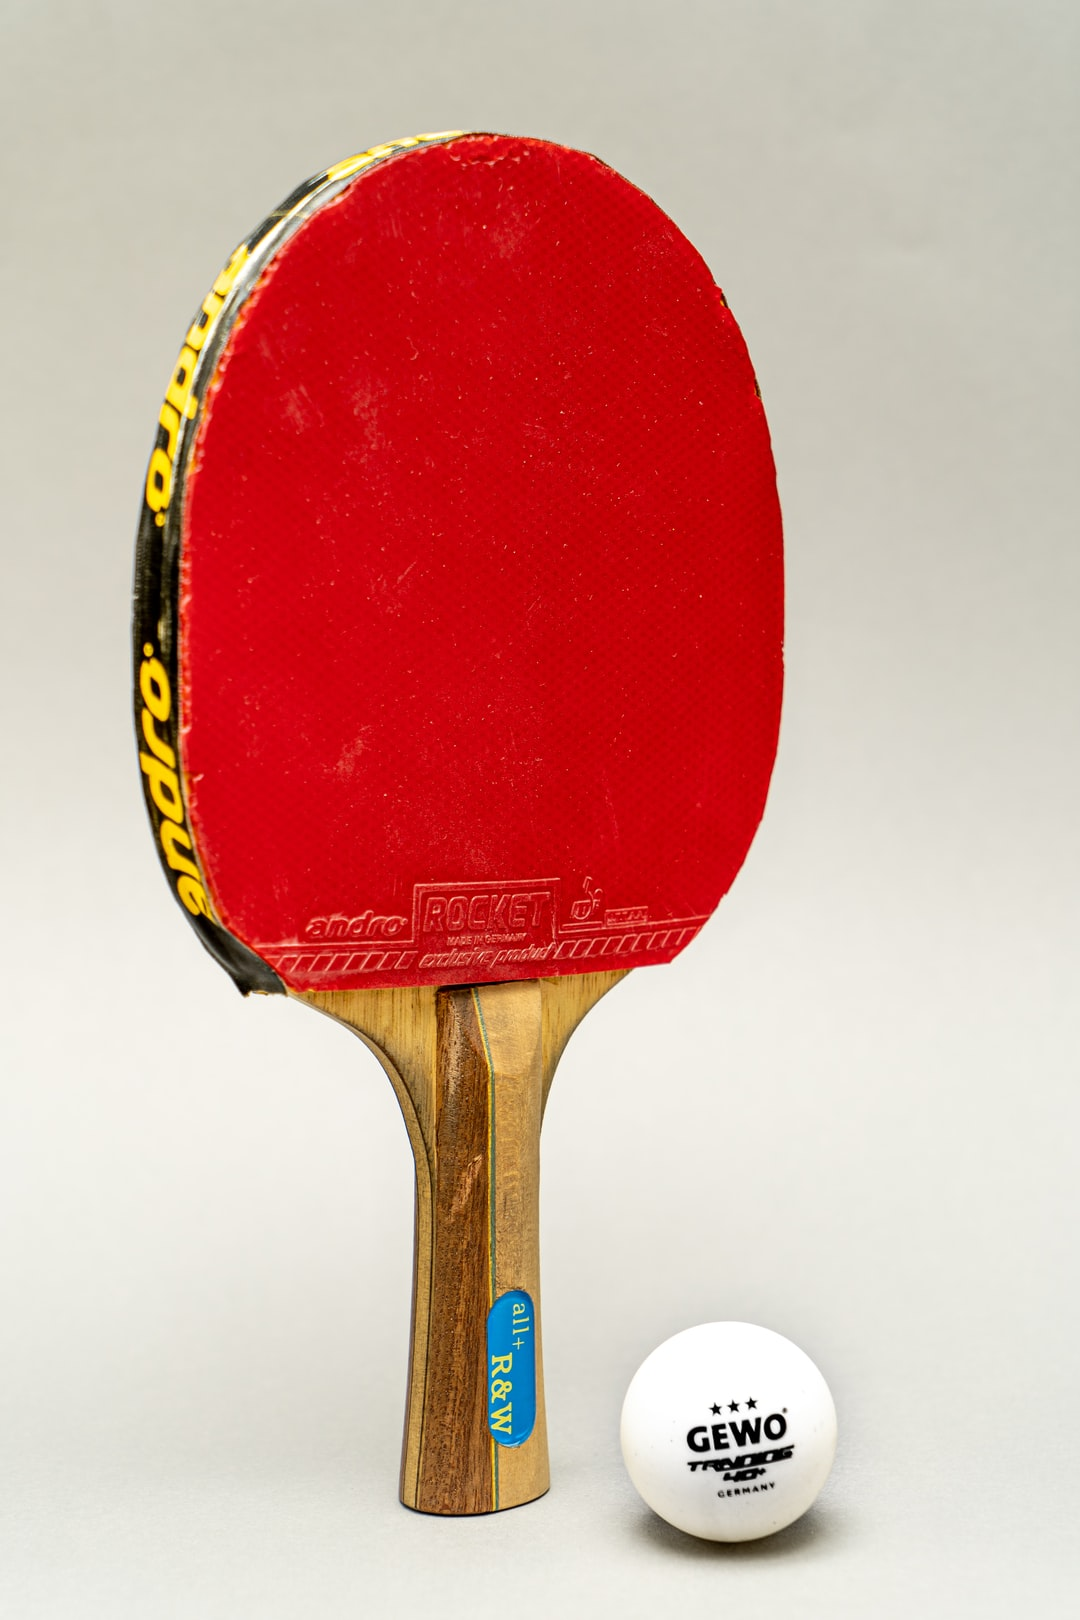 A ping-pong racket with a ball in front of a backdrop!